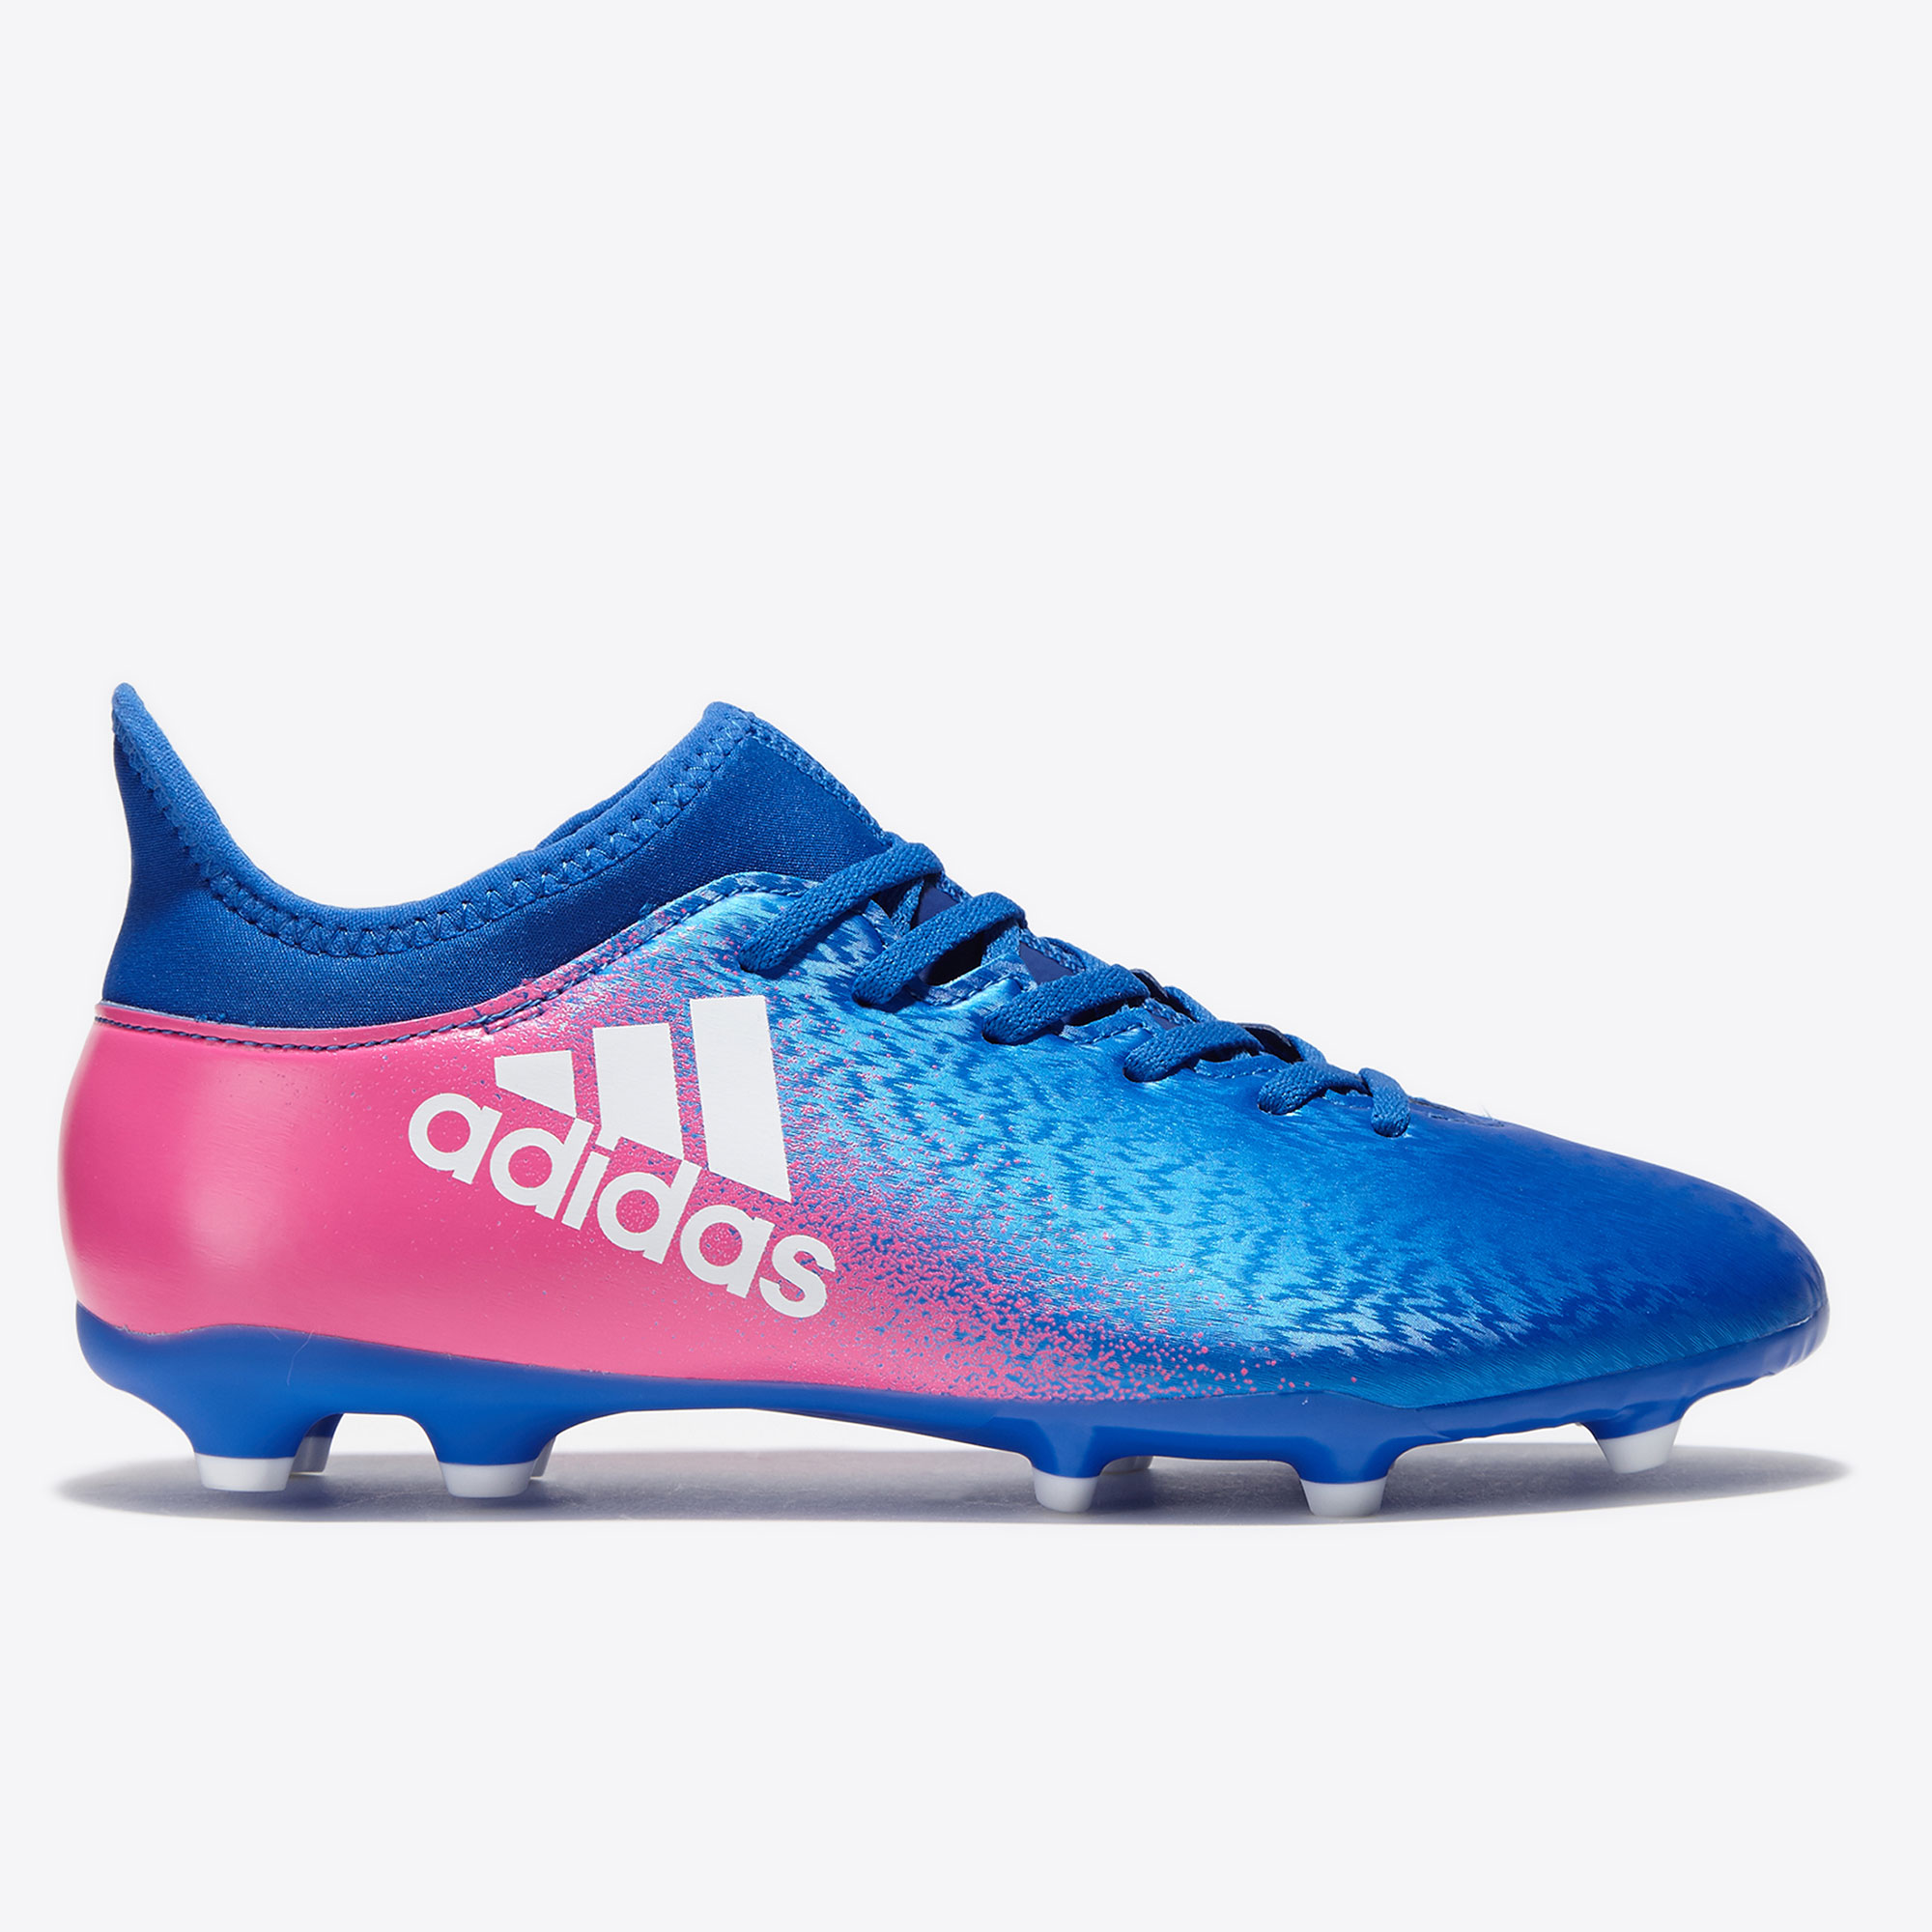 adidas X 16.3 Firm Ground Football Boots - Blue/White/Shock Pink - Kid